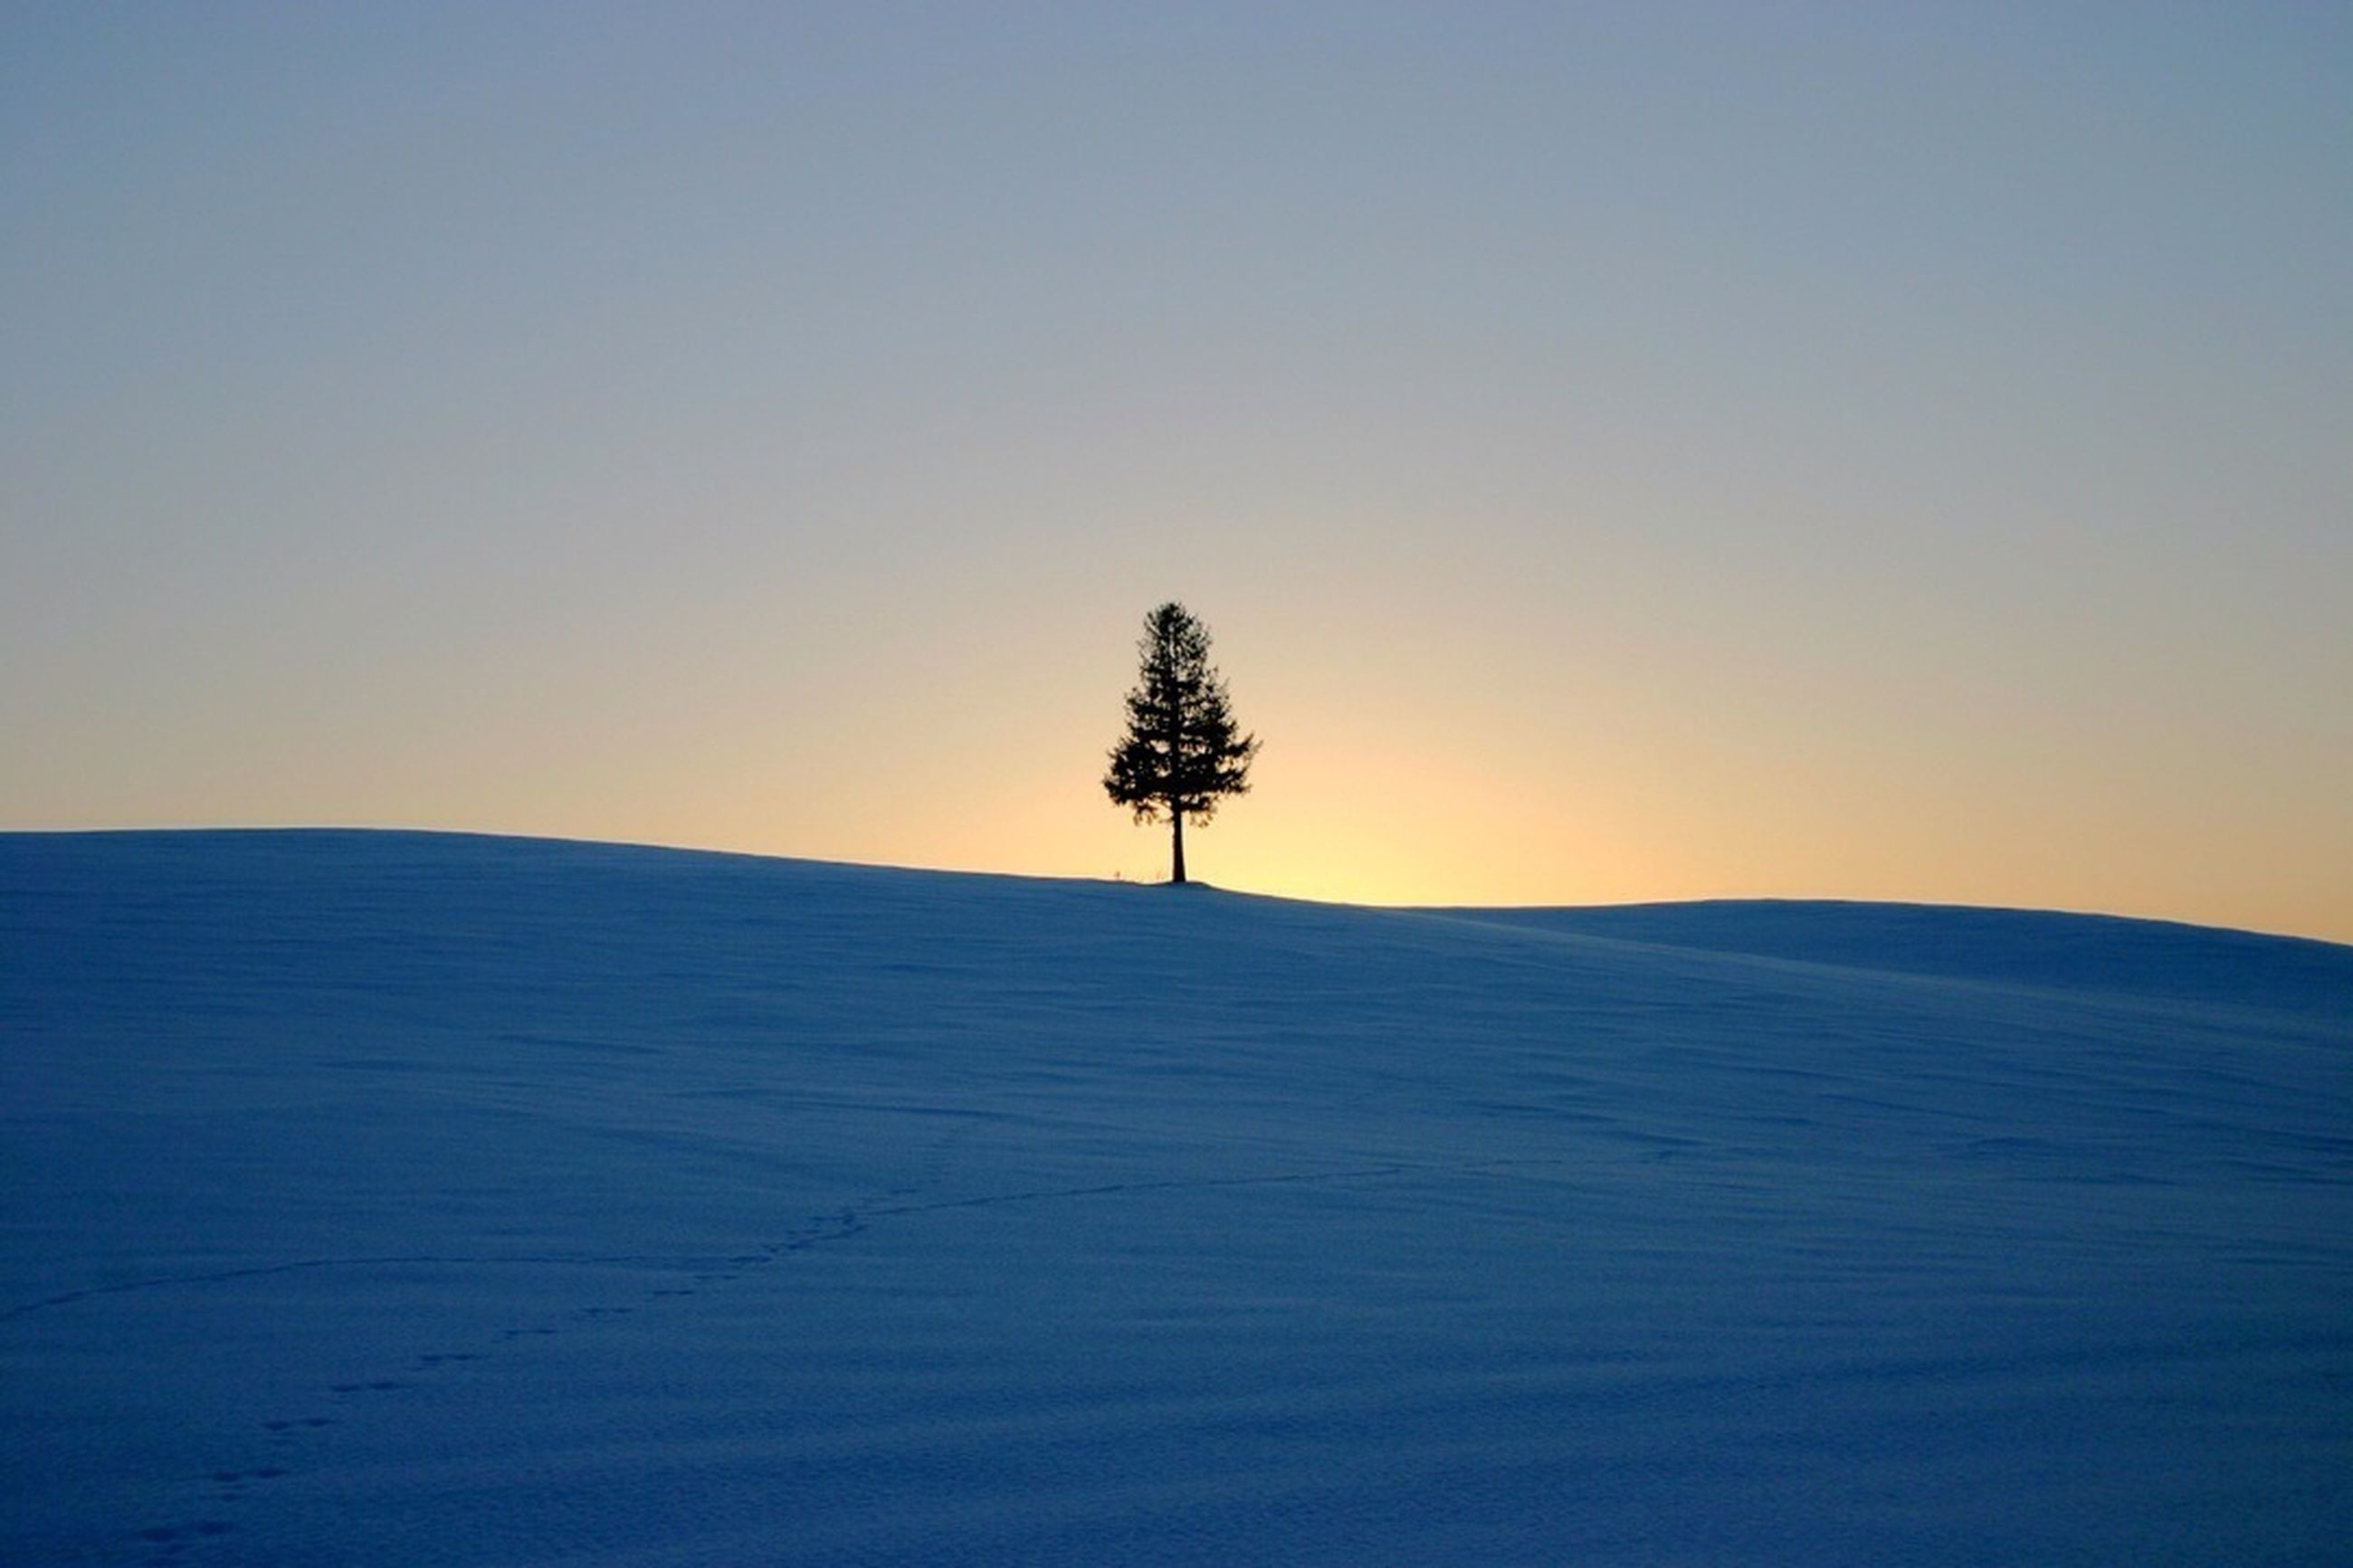 tranquil scene, tranquility, clear sky, landscape, scenics, copy space, beauty in nature, nature, tree, snow, bare tree, cold temperature, non-urban scene, field, horizon over land, winter, silhouette, sunset, remote, solitude